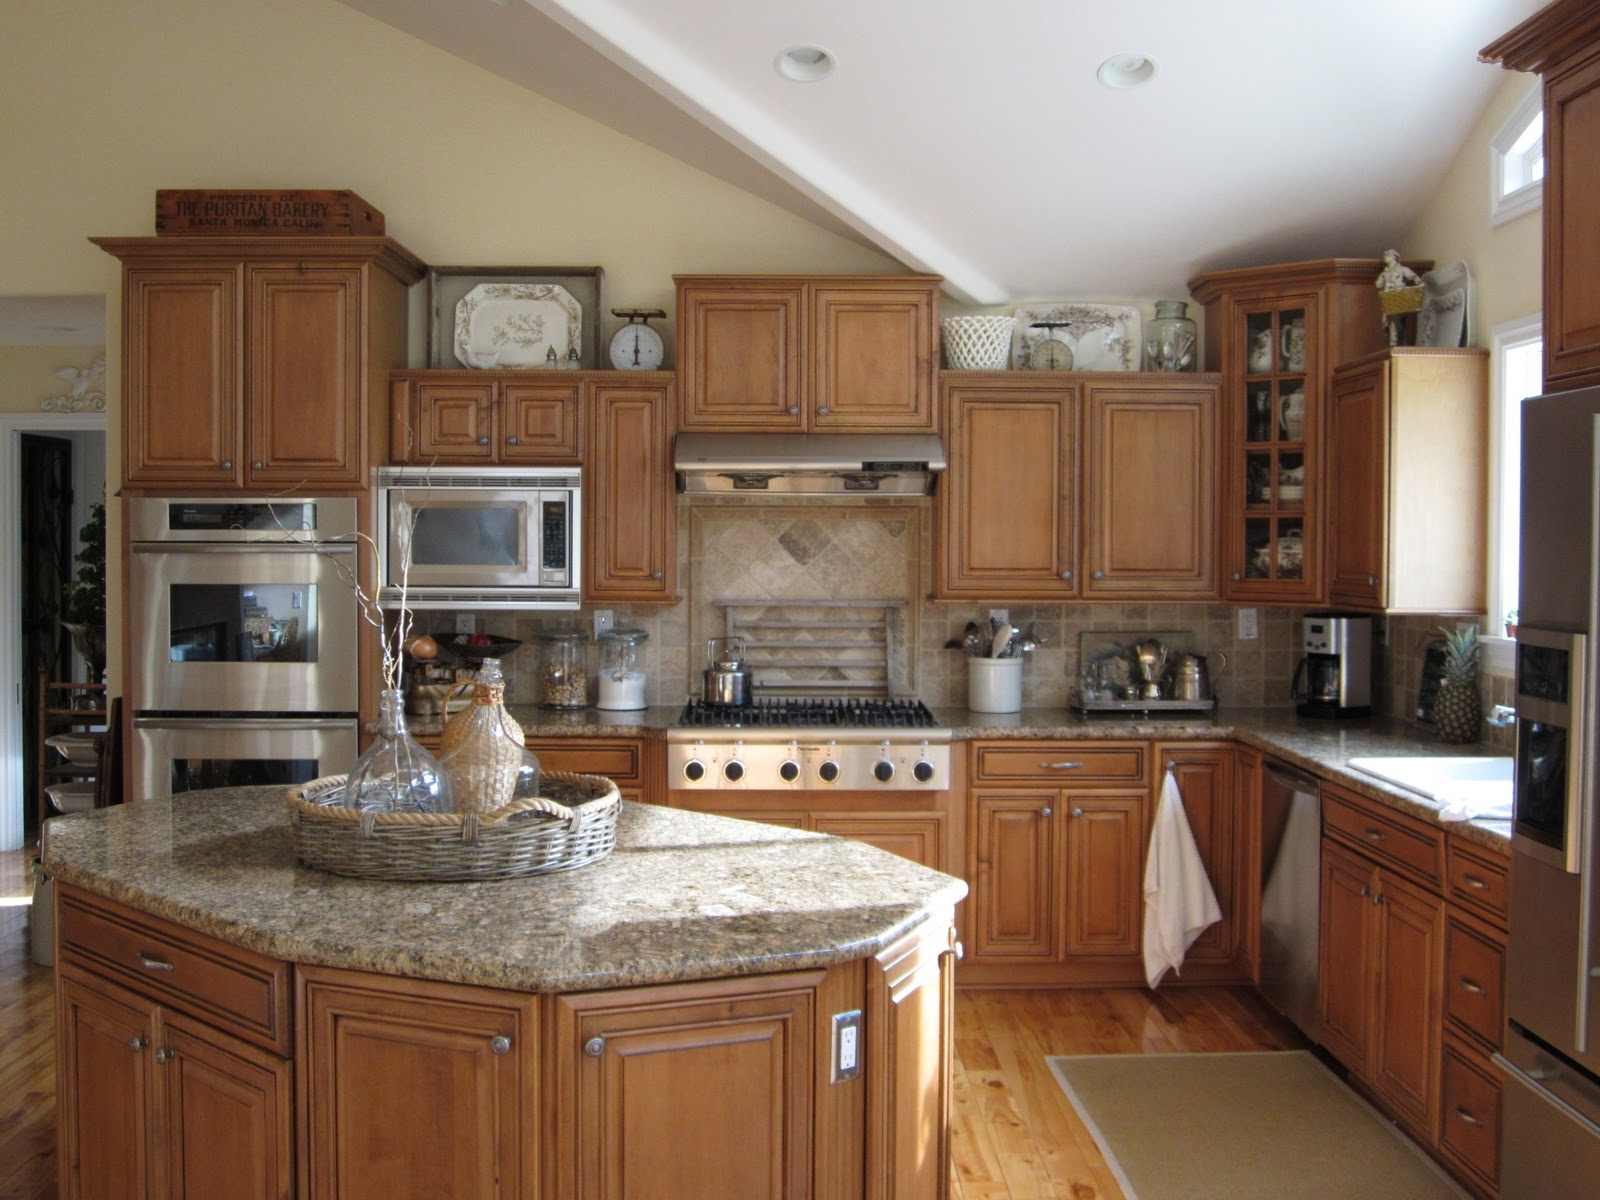 Decorating Above Kitchen Cabinets With High Ceilings